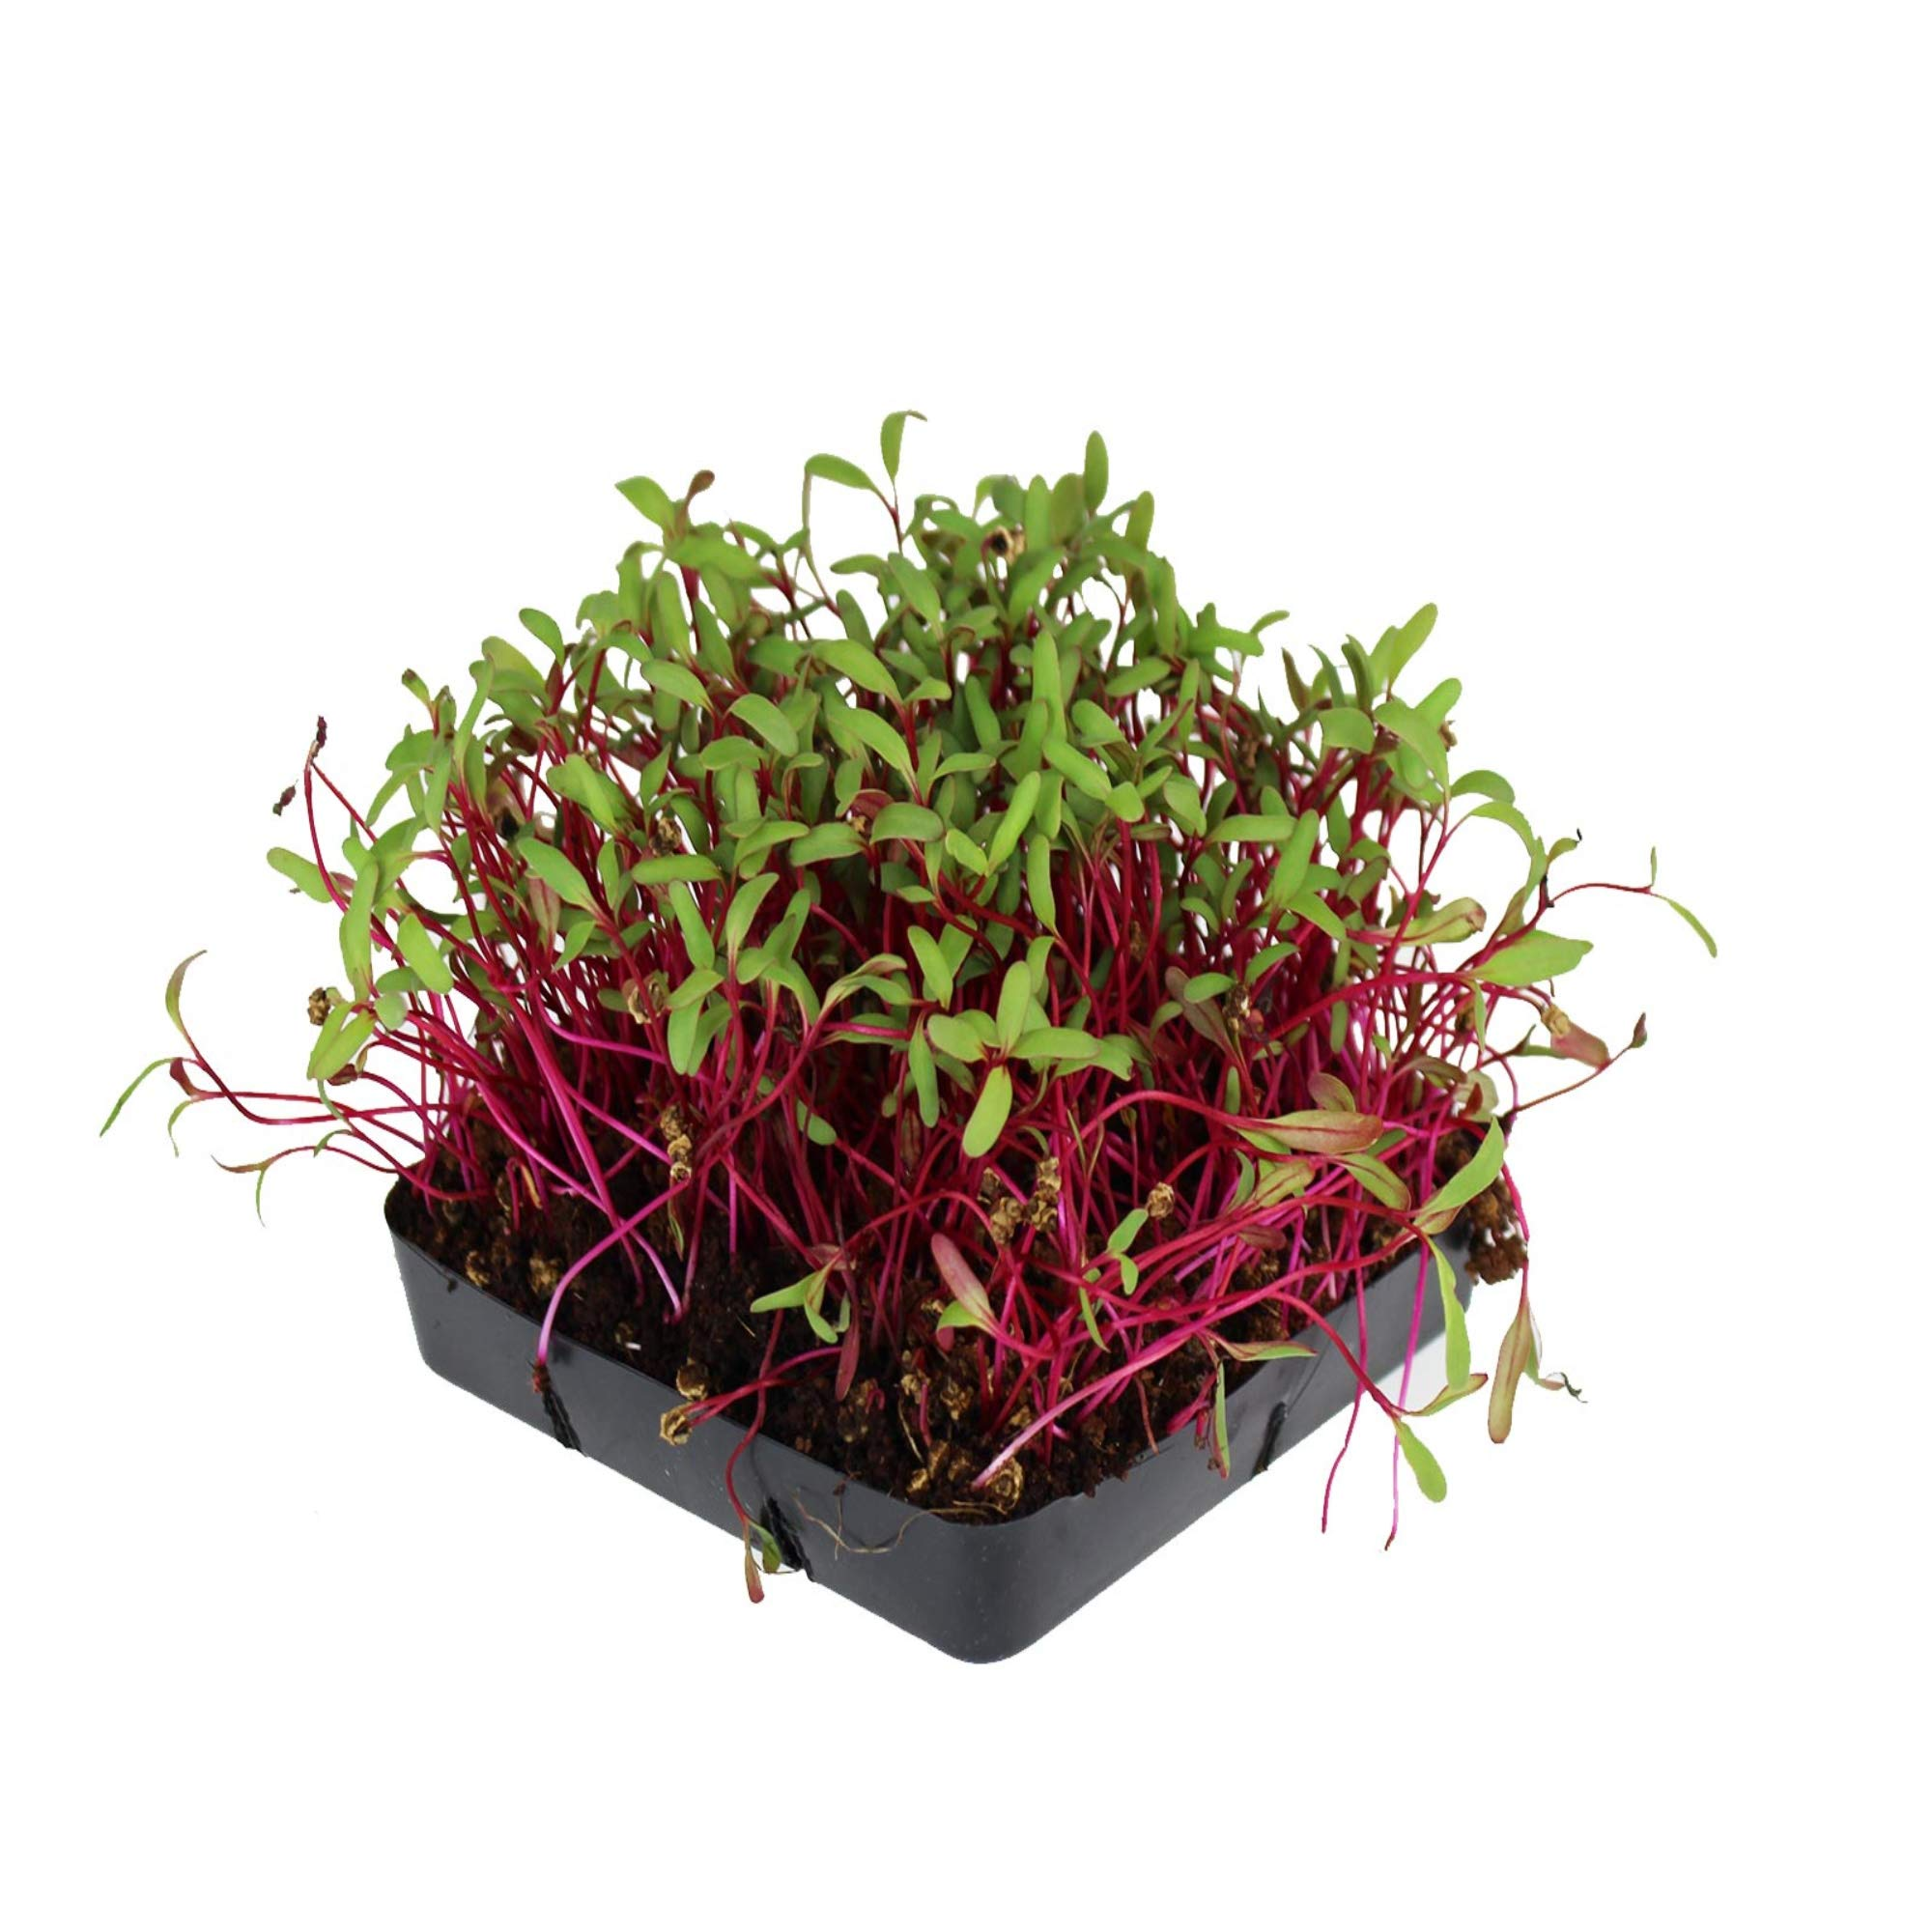 Detroit Dark Red Beet Seeds - Non-GMO Bulk Heirloom Seed for Growing Microgreens, Vegetable Gardening, Garden Salad Garnishes, More (1 Lb) by Mountain Valley Seed Company